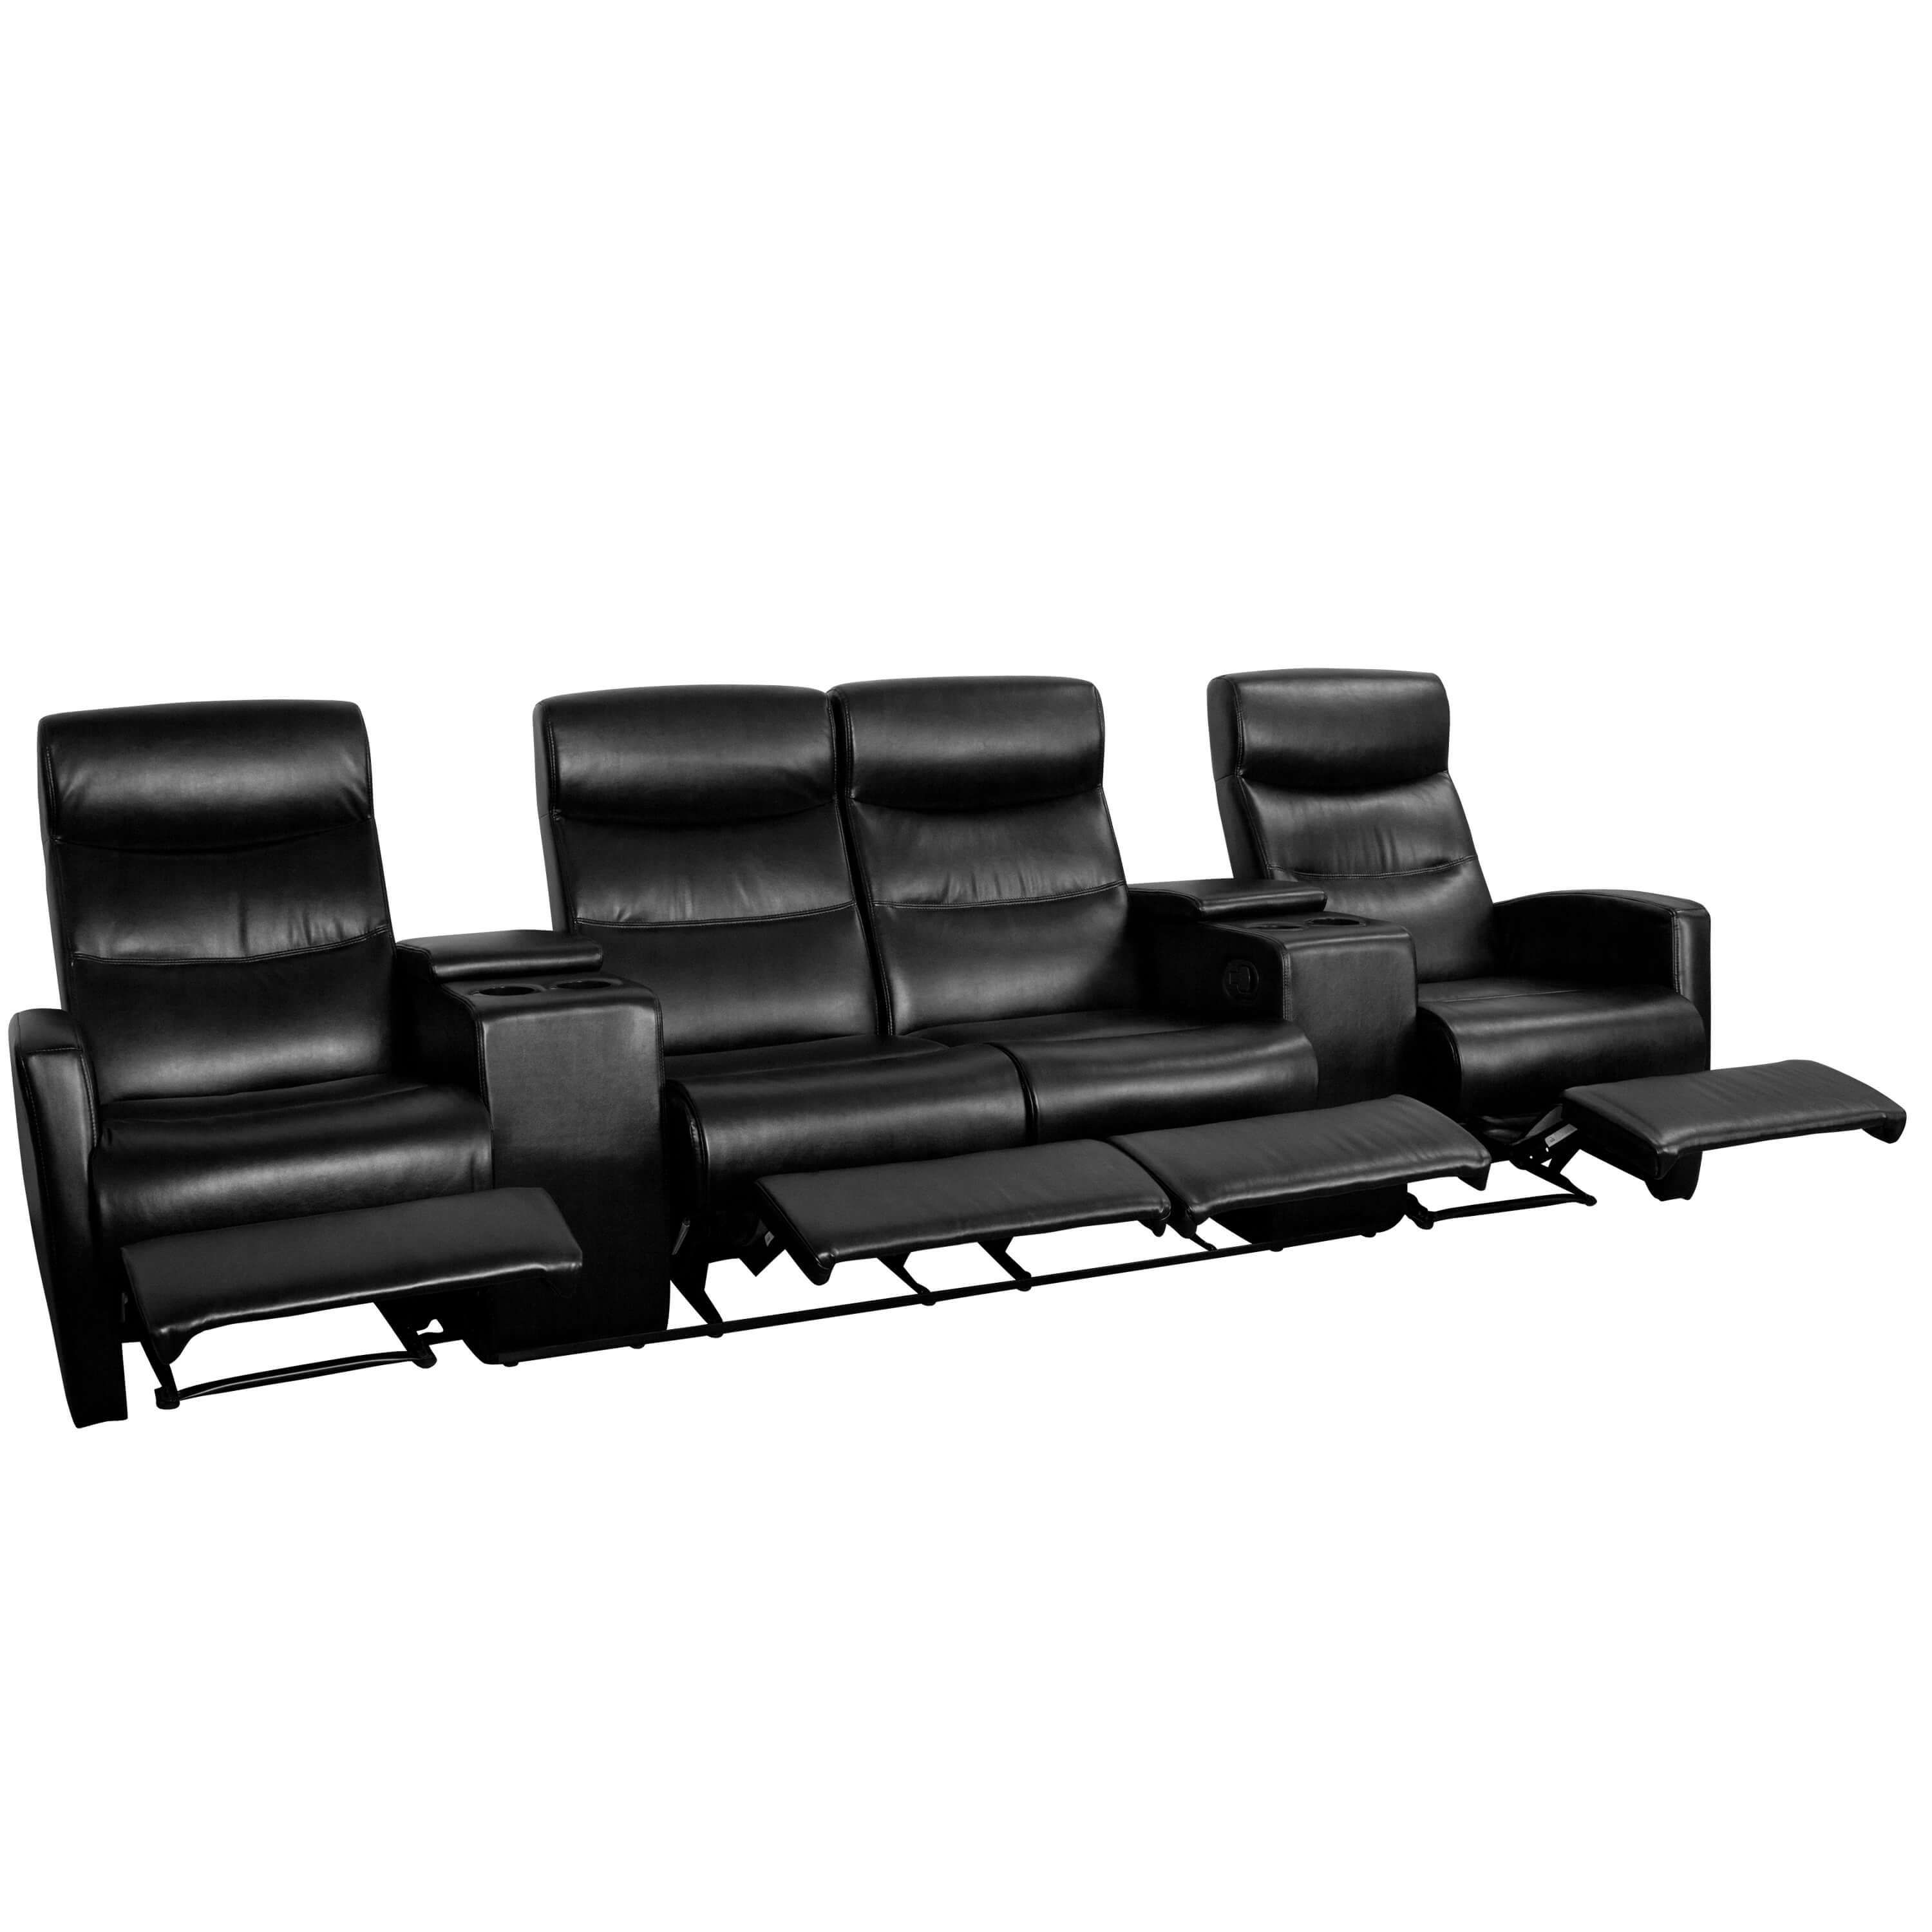 Hayworth 4 Seater Recliner Sofa Home Theater Seating Recliner